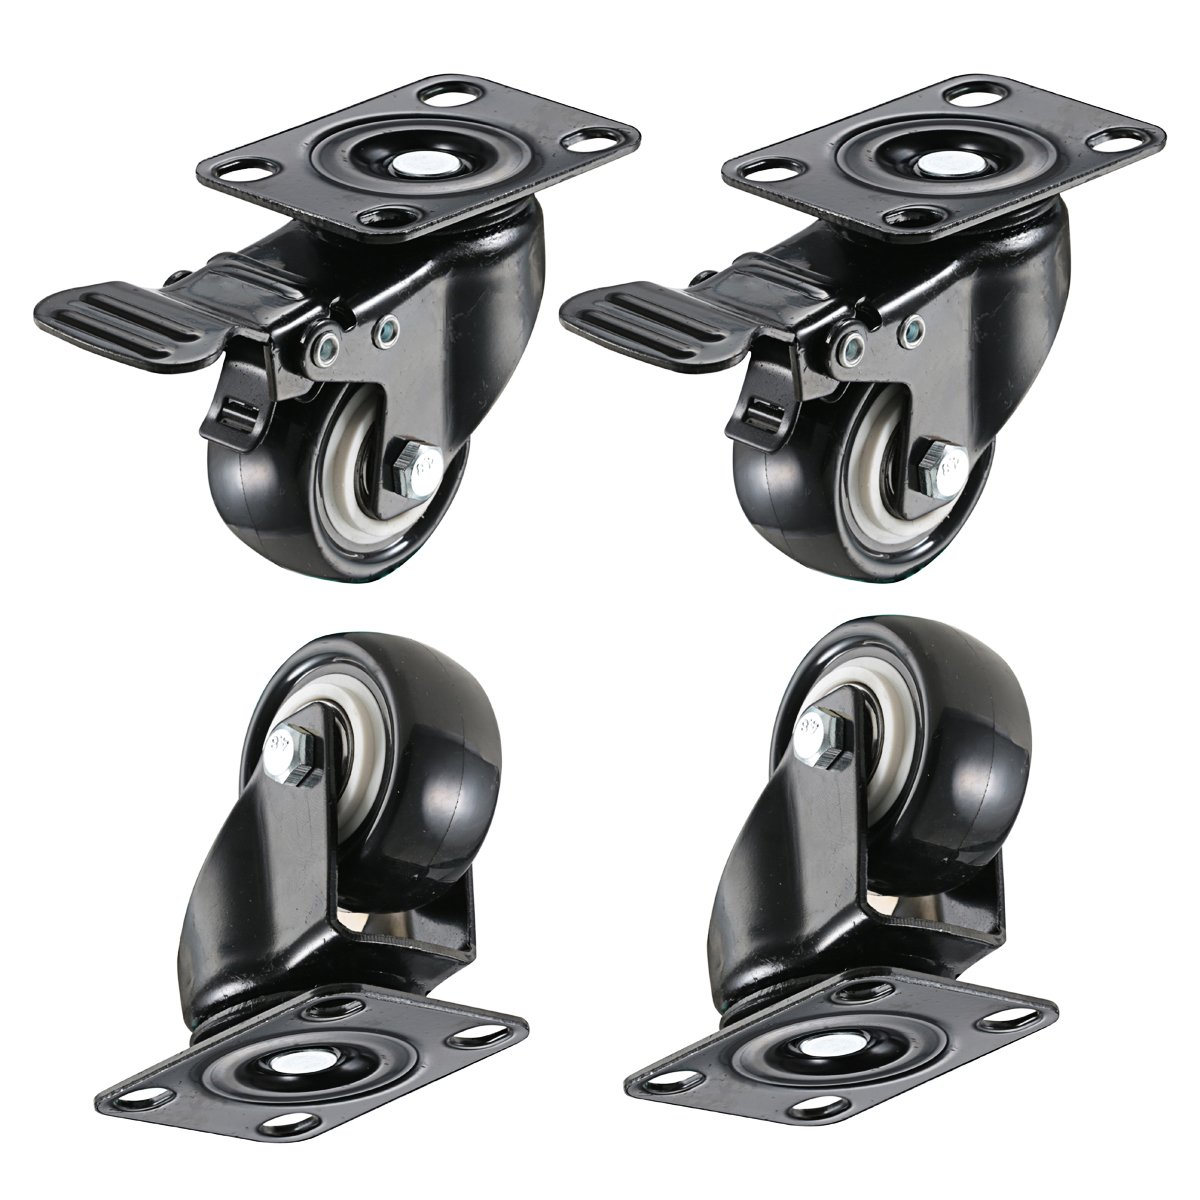 bayite 4 Pack 2'' Heavy Duty Caster Wheels Polyurethane PU Swivel Casters with 360 Degree Top Plate 220lb Total Capacity for Set of 4 (2 with Brakes& 2 without) Black